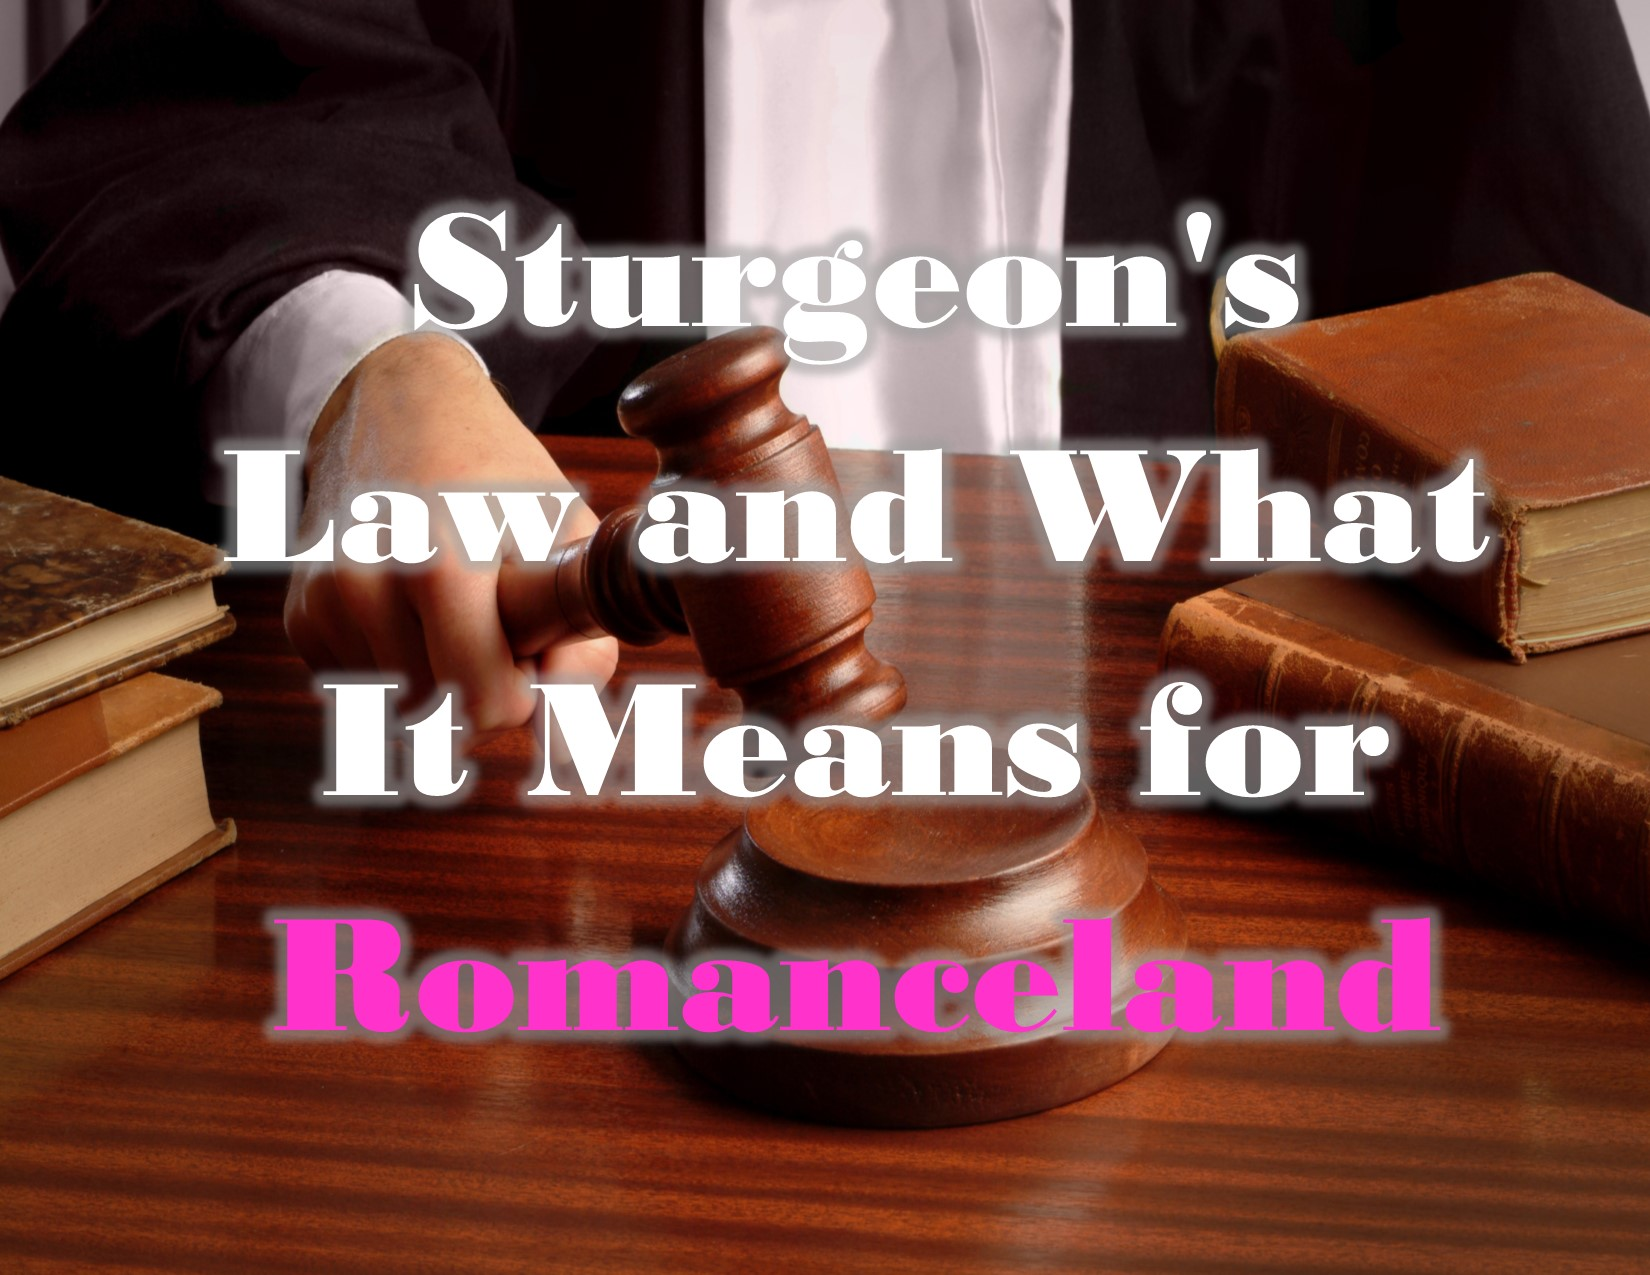 Sturgeon's Law and What It Means for Romanceland